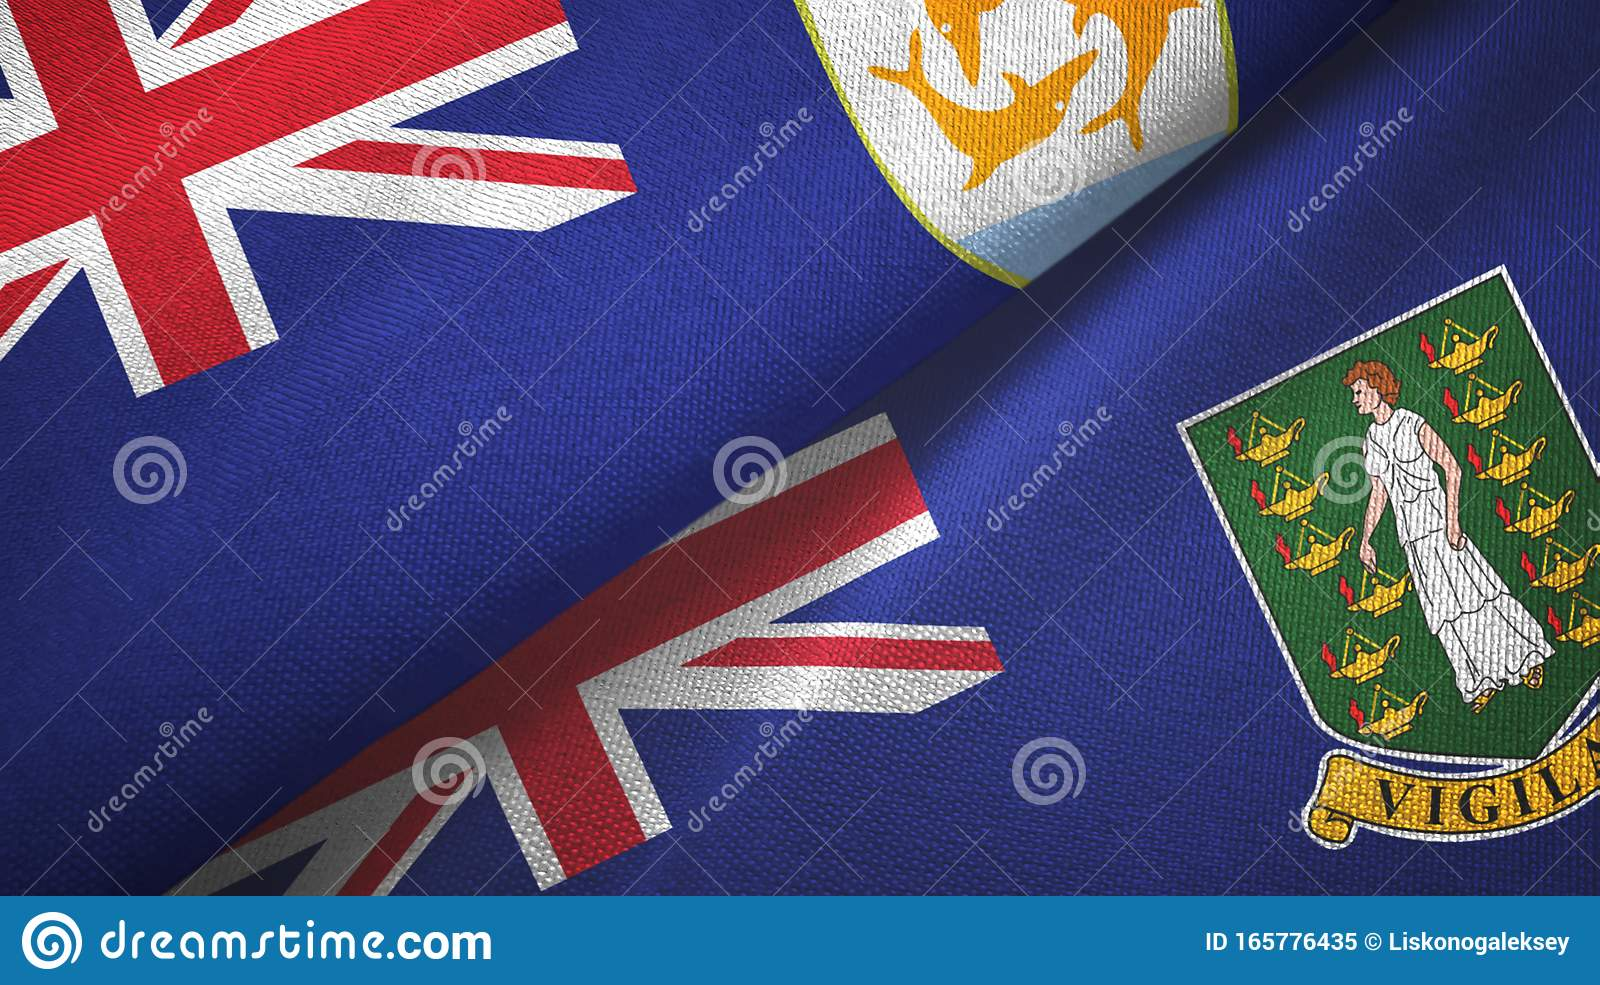 Anguilla And Virgin Islands British Two Flags Textile ...